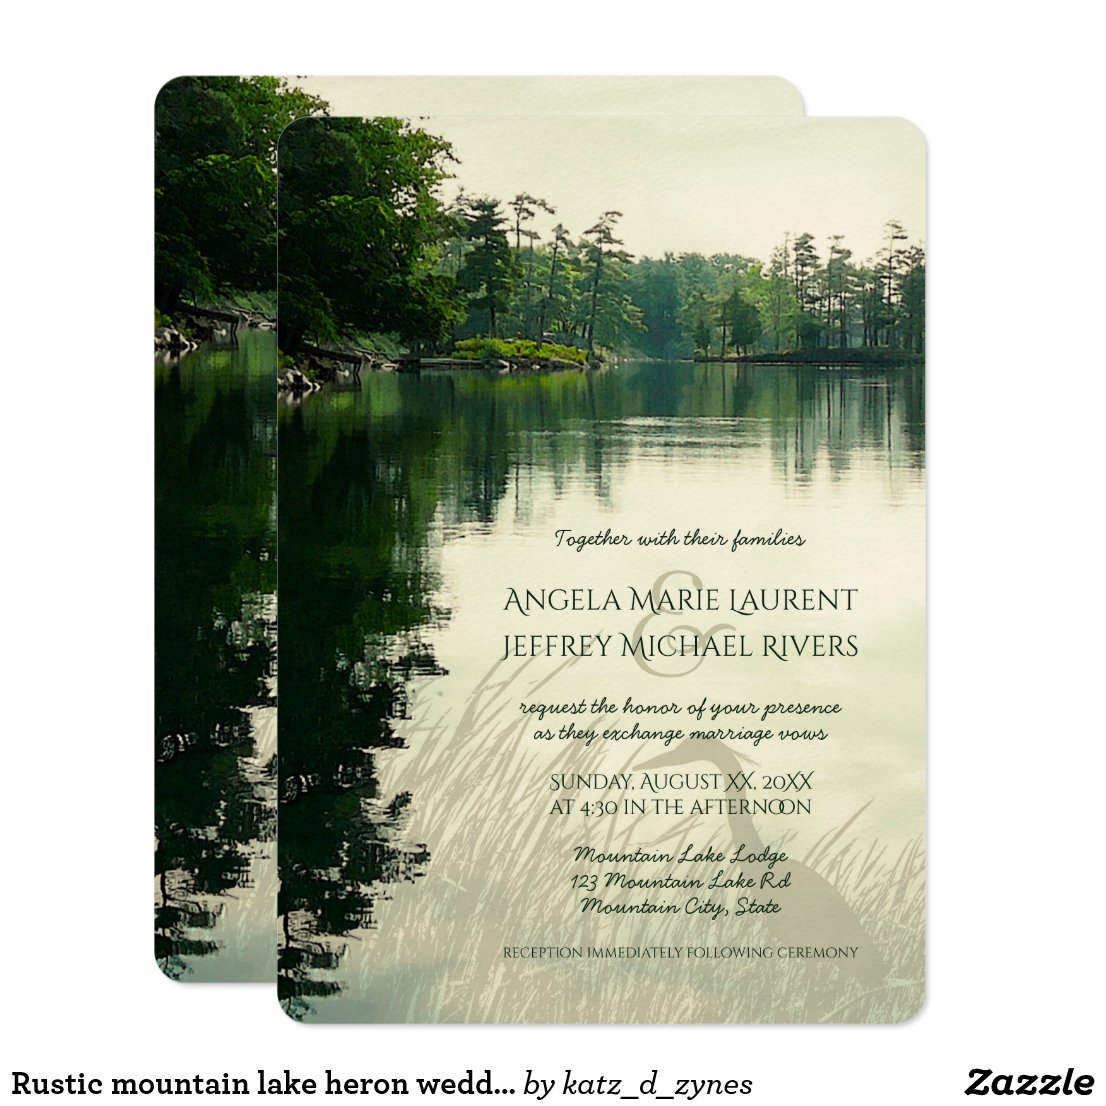 Rustic mountain lake heron silhouette wedding invitation